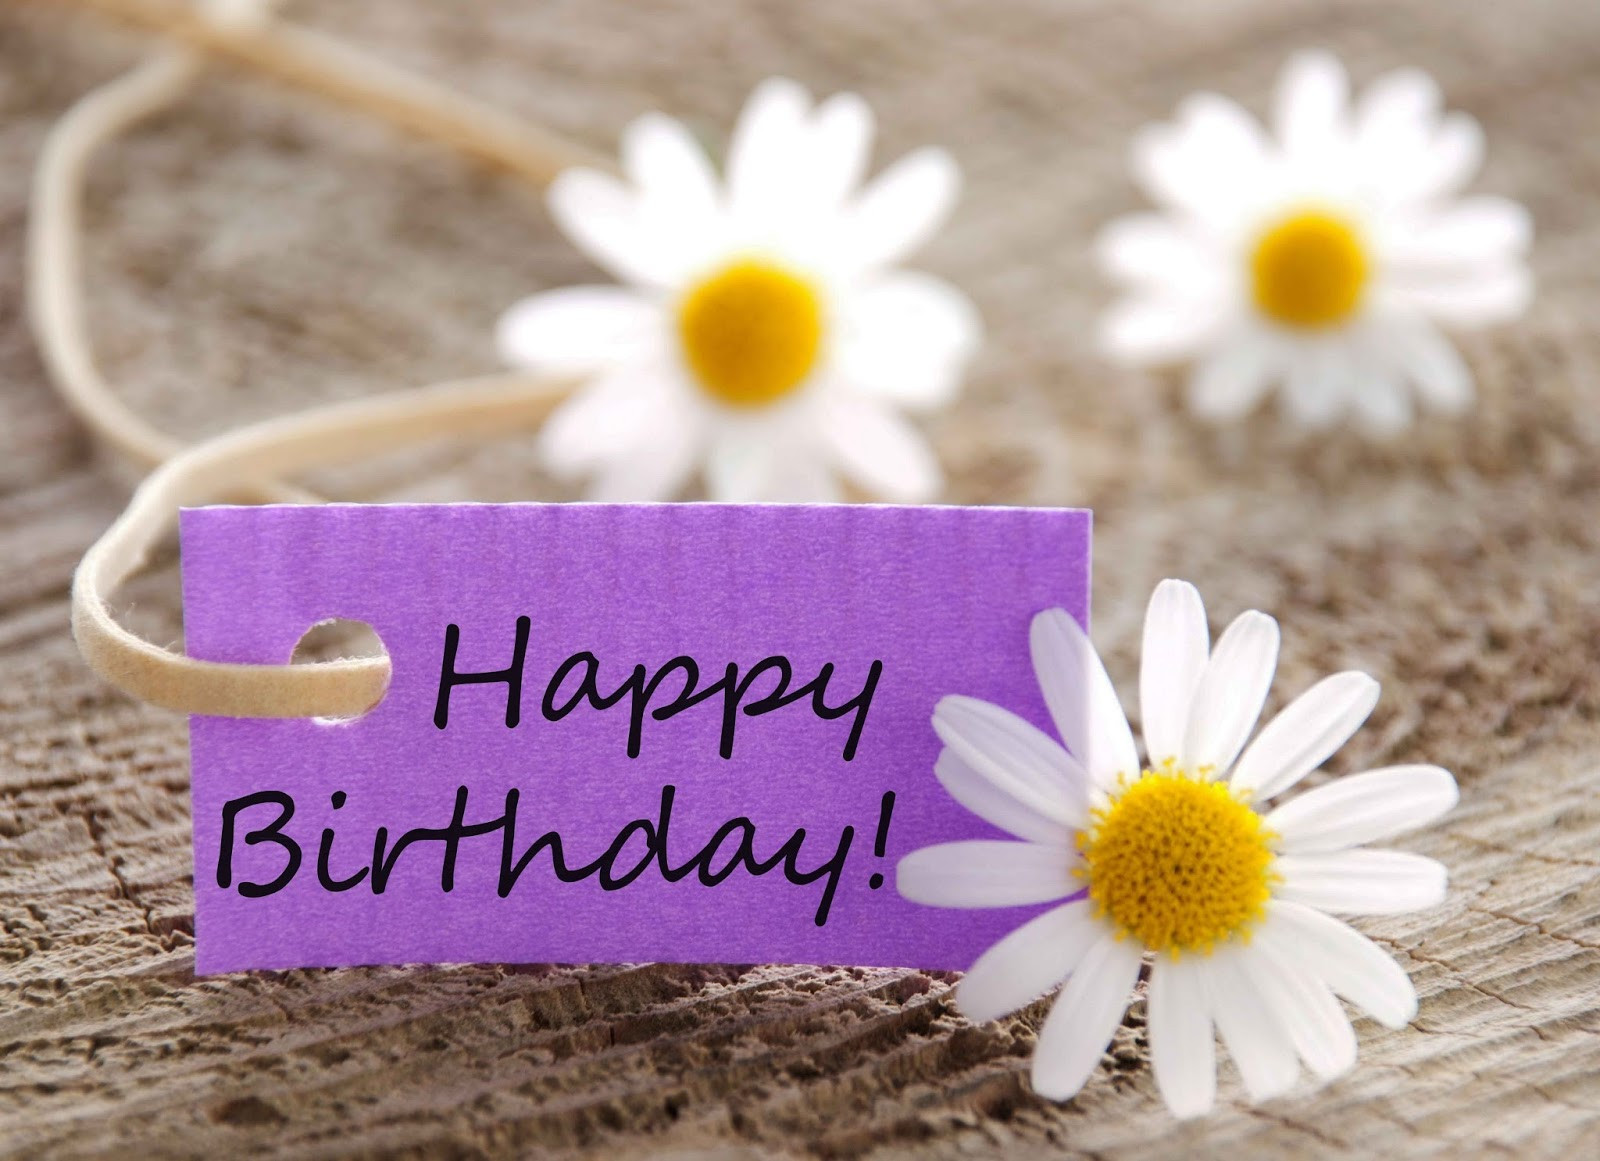 Best ideas about Best Birthday Wishes . Save or Pin 100 Heart Touching Birthday Wishes Now.